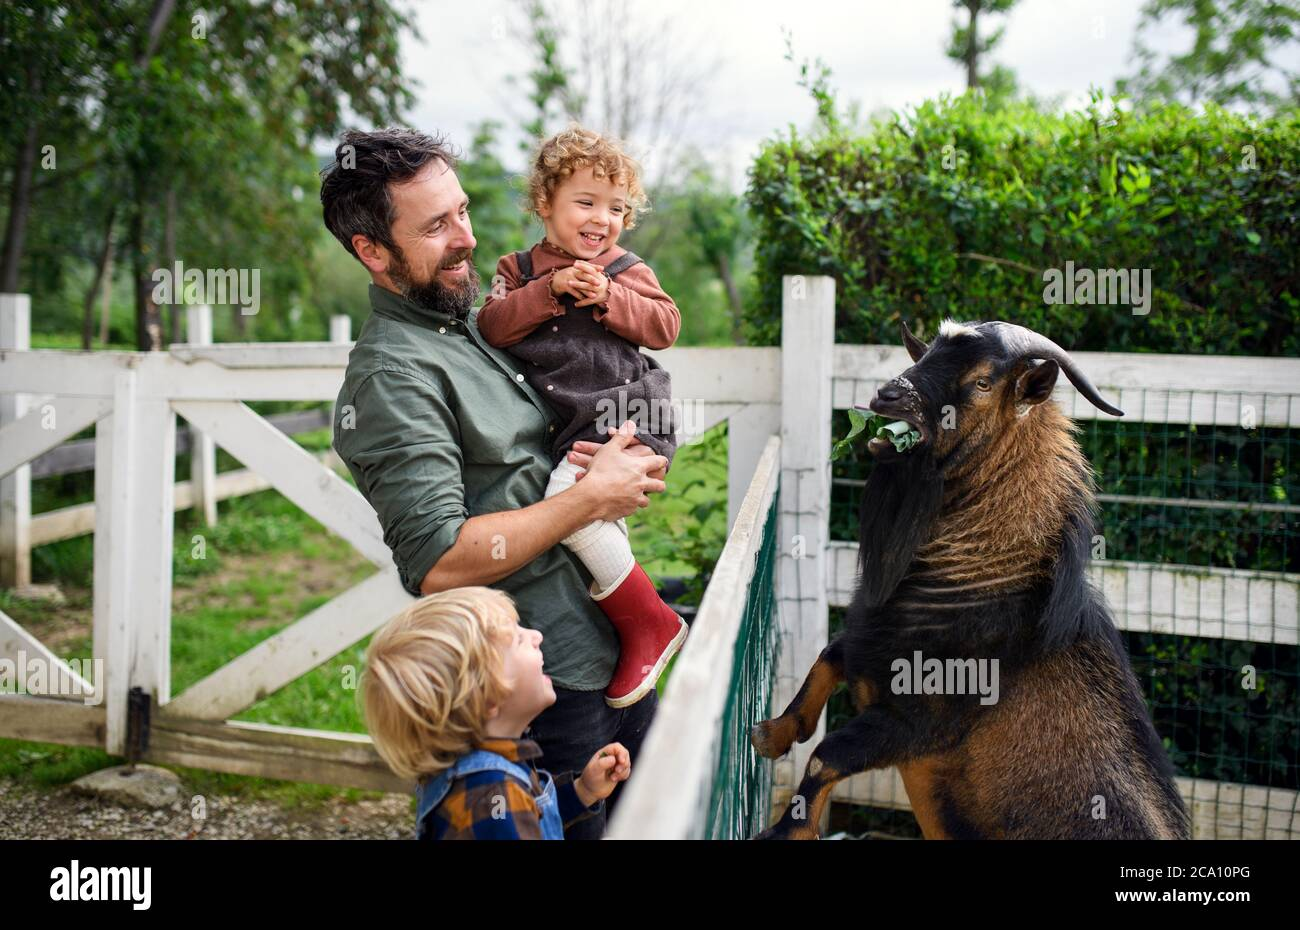 Portrait of father with small children standing on farm, feeding goat. Stock Photo